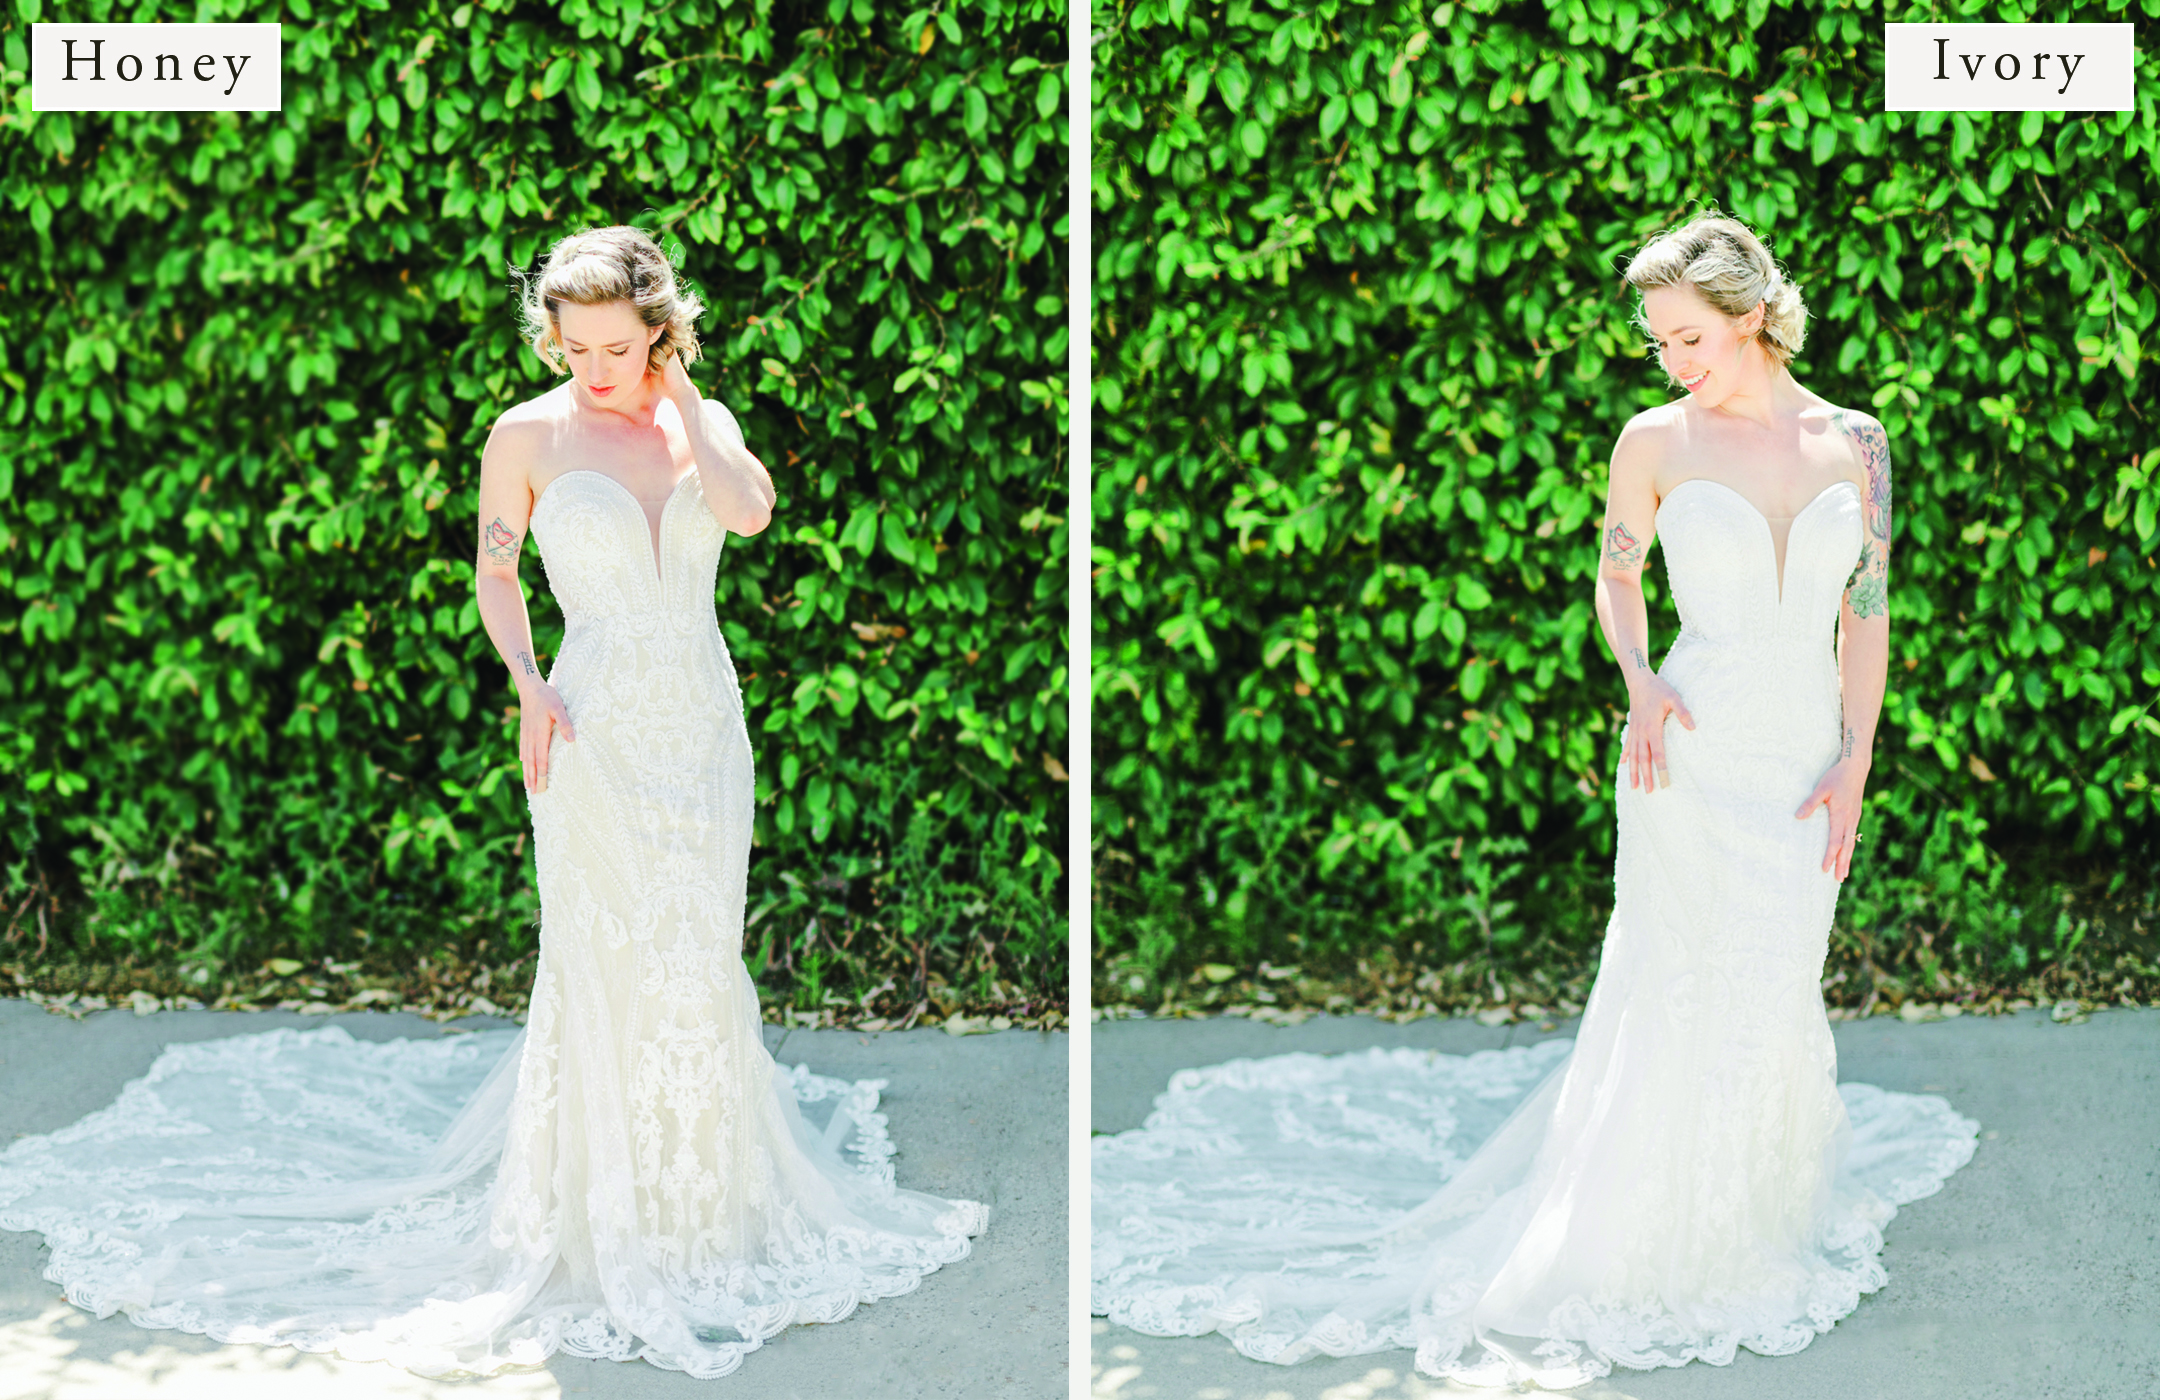 Martina Liana 1060: Same Gown in Two Different Lining Colors - Honey Vs Ivory